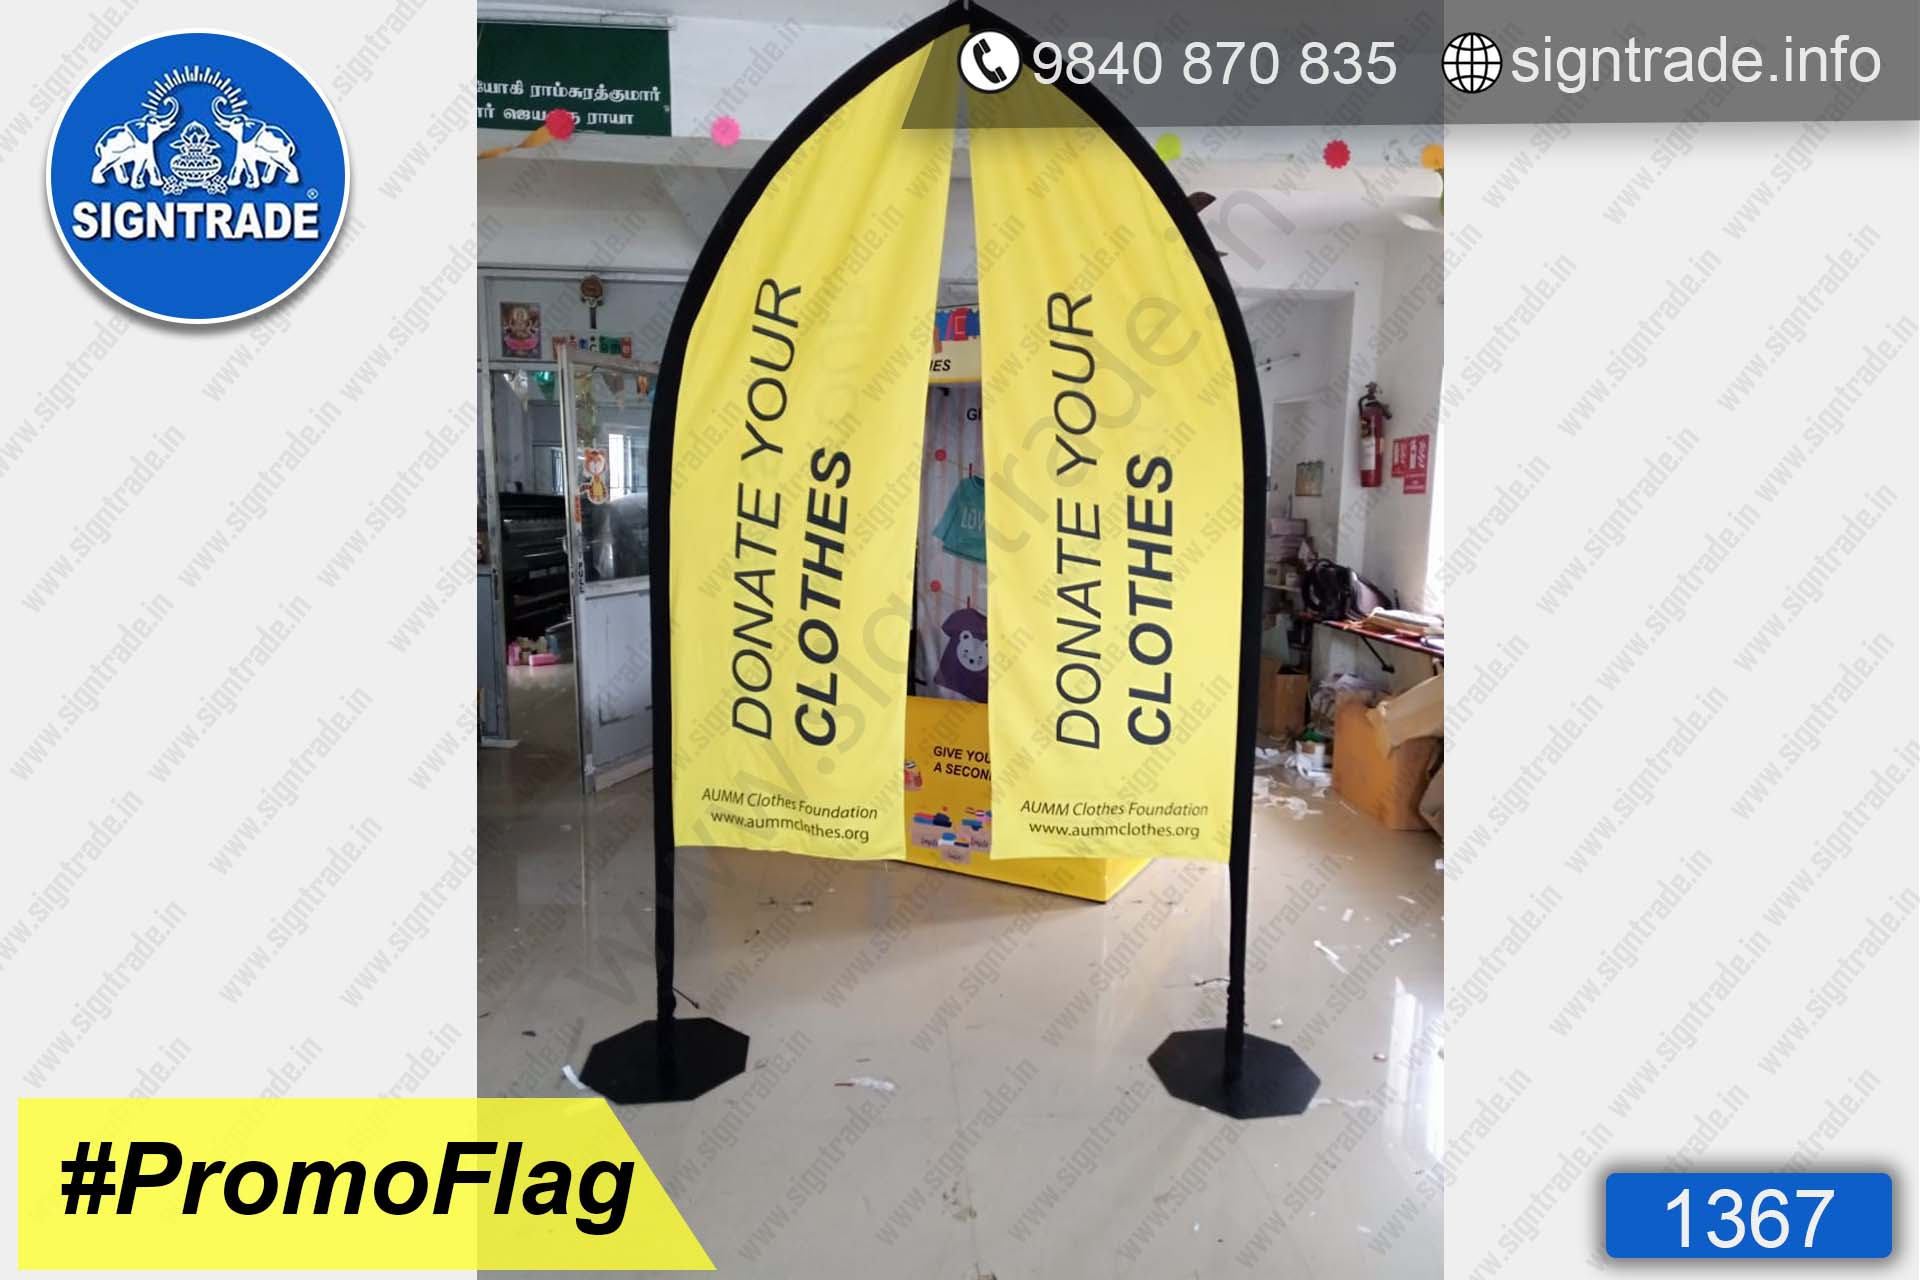 Donate Your Clothes - 1367, Flags, Flag, Promo Flag, Promotional Flags, Promotional Flag